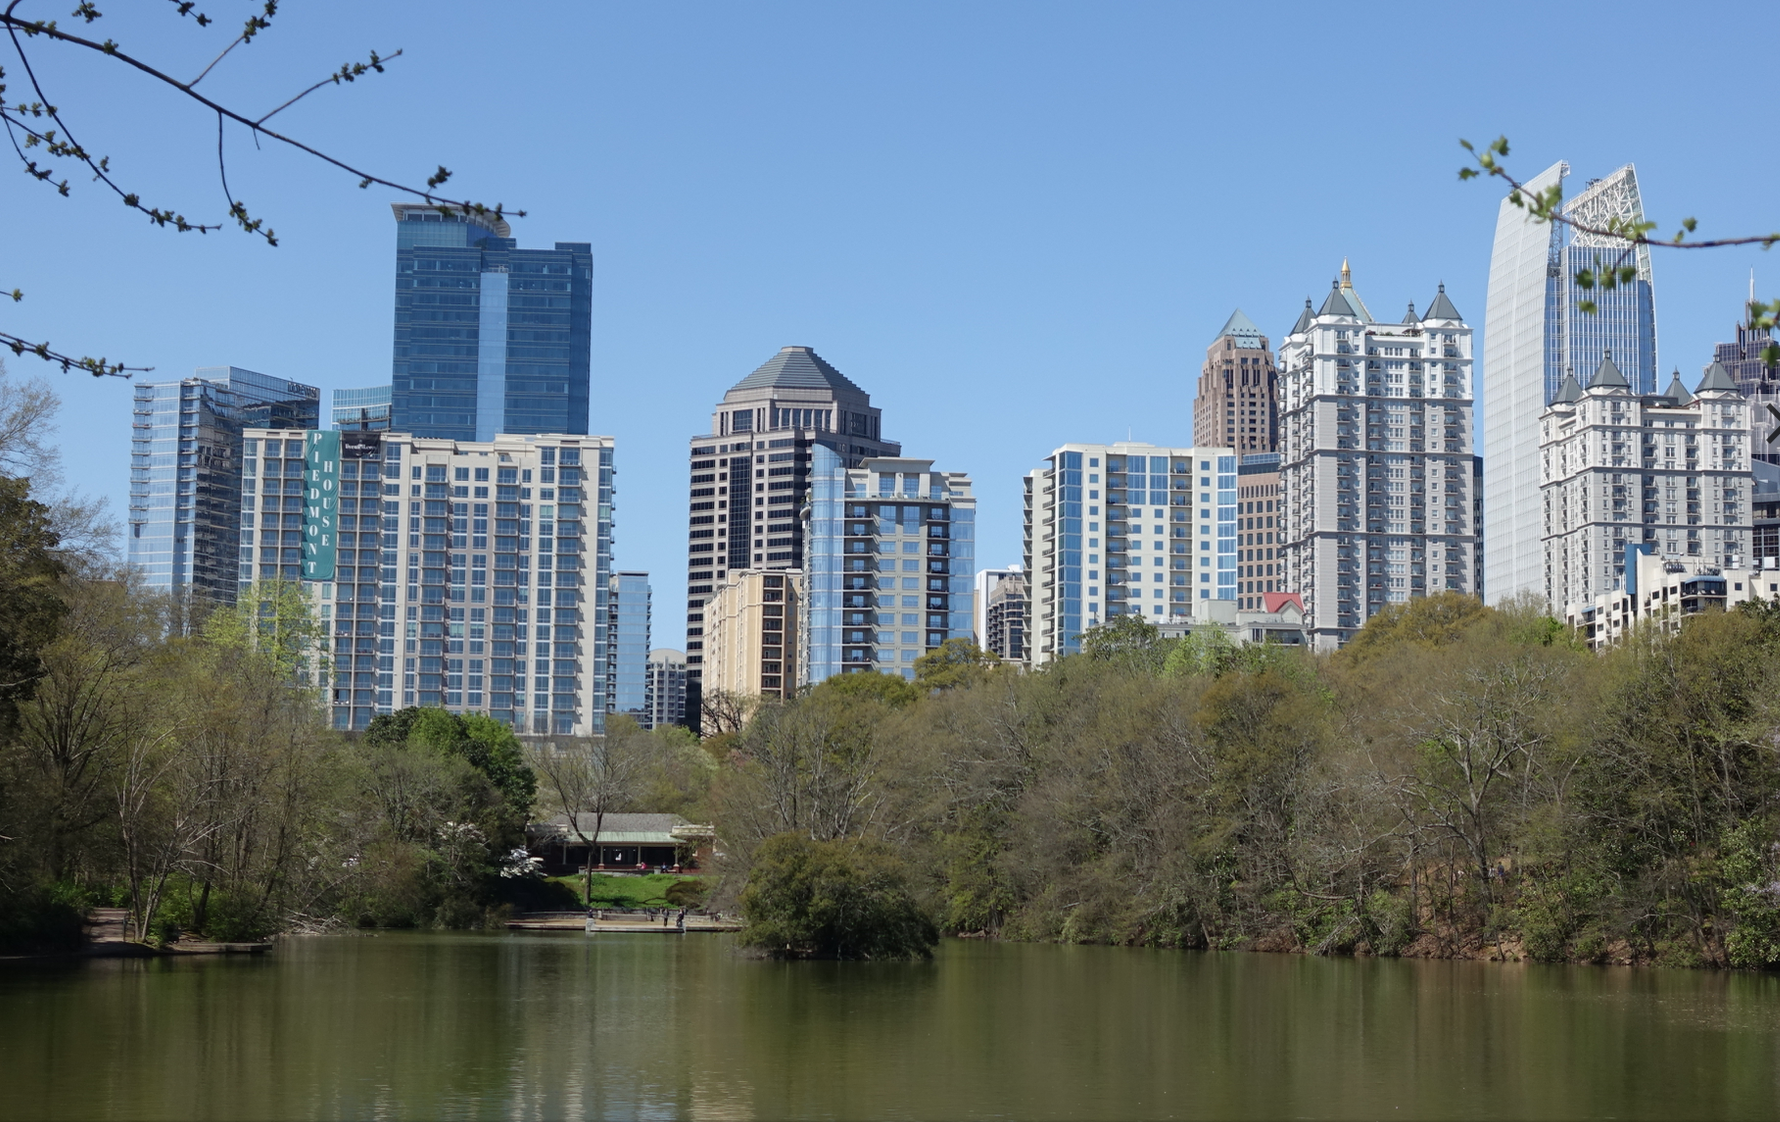 Looking across Piedmont Park's Lake Clara Meer to the midtown condos.